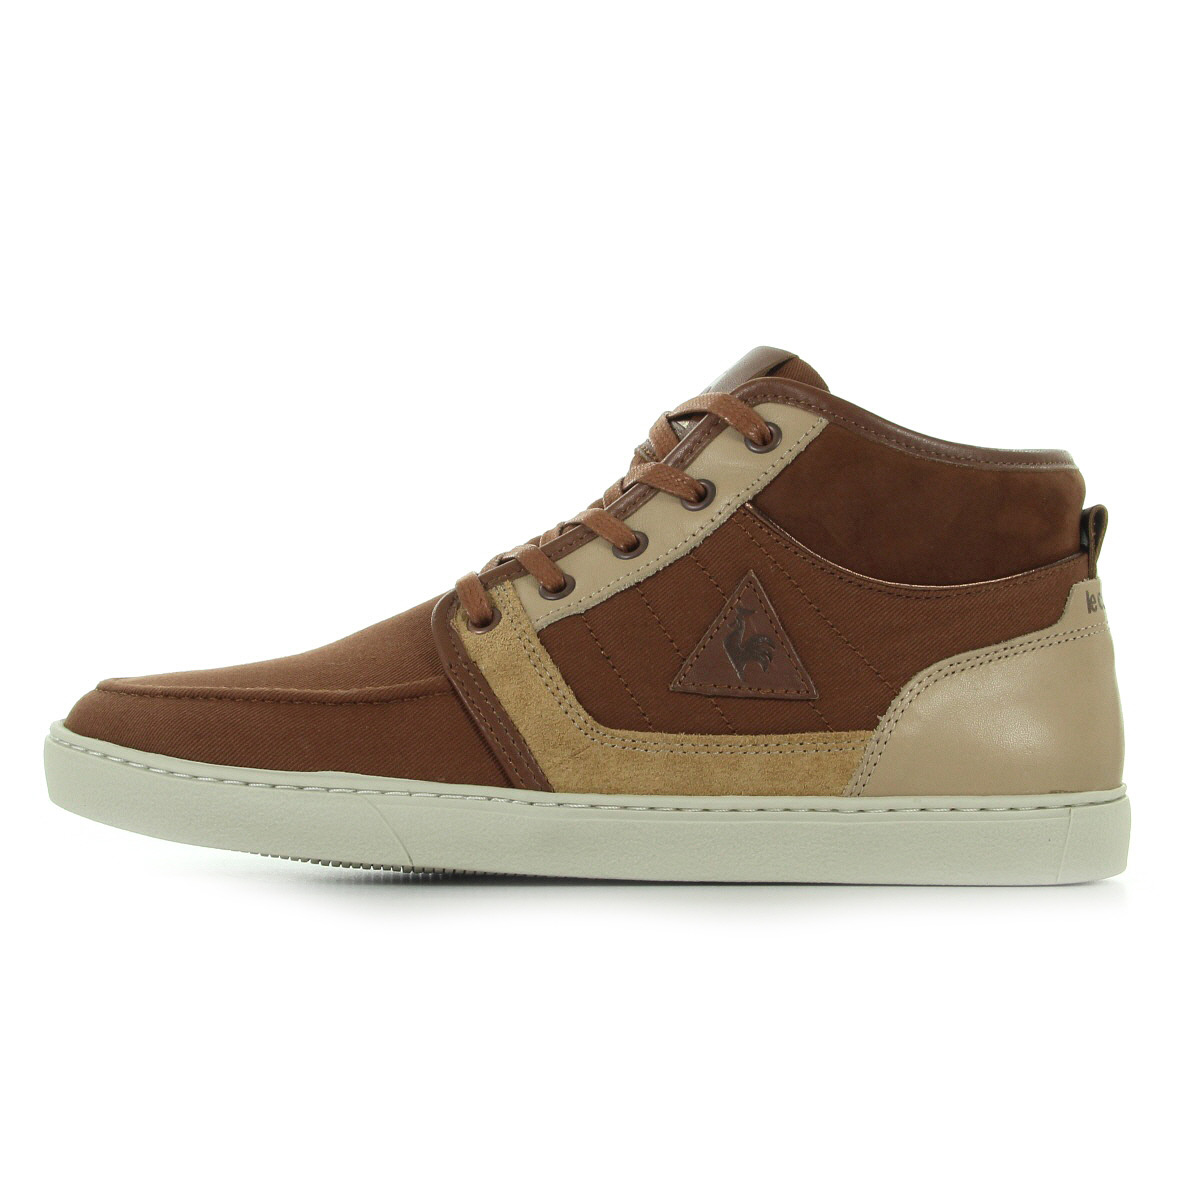 chaussures baskets le coq sportif homme perpignan demi cvs suede taille brun ebay. Black Bedroom Furniture Sets. Home Design Ideas